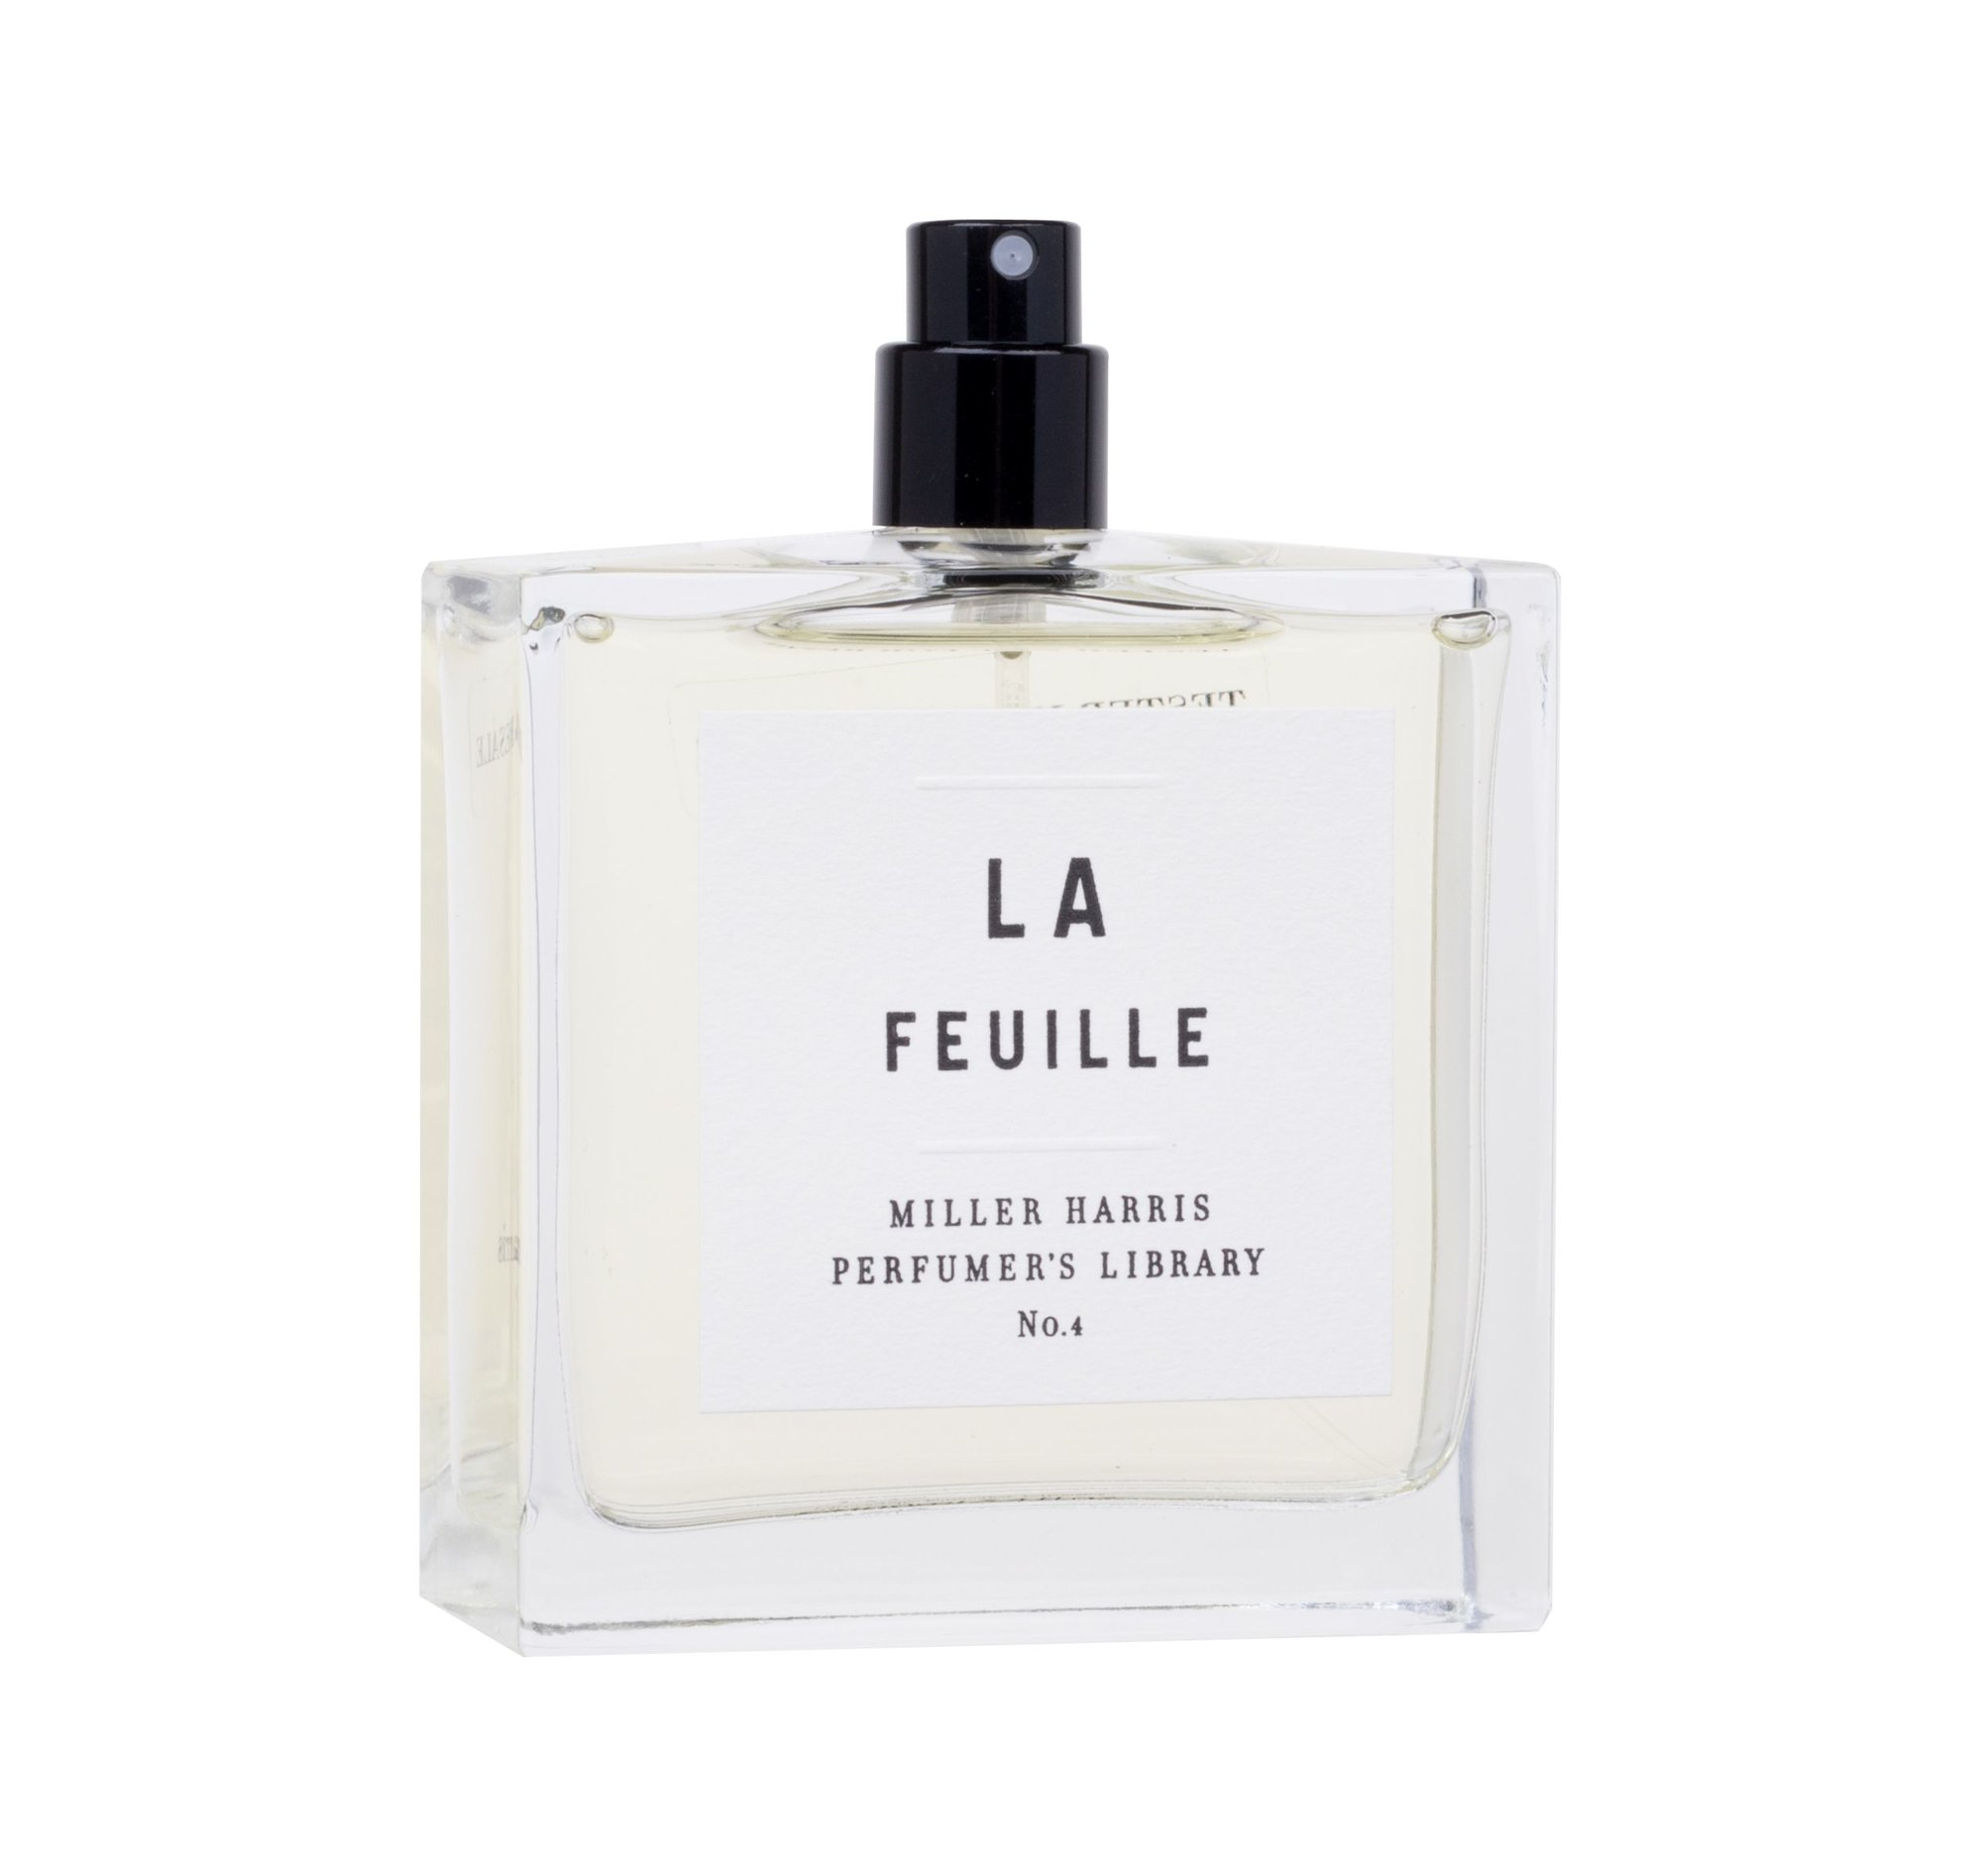 Miller Harris Perfumer´s Library La Feuille EDP 100ml